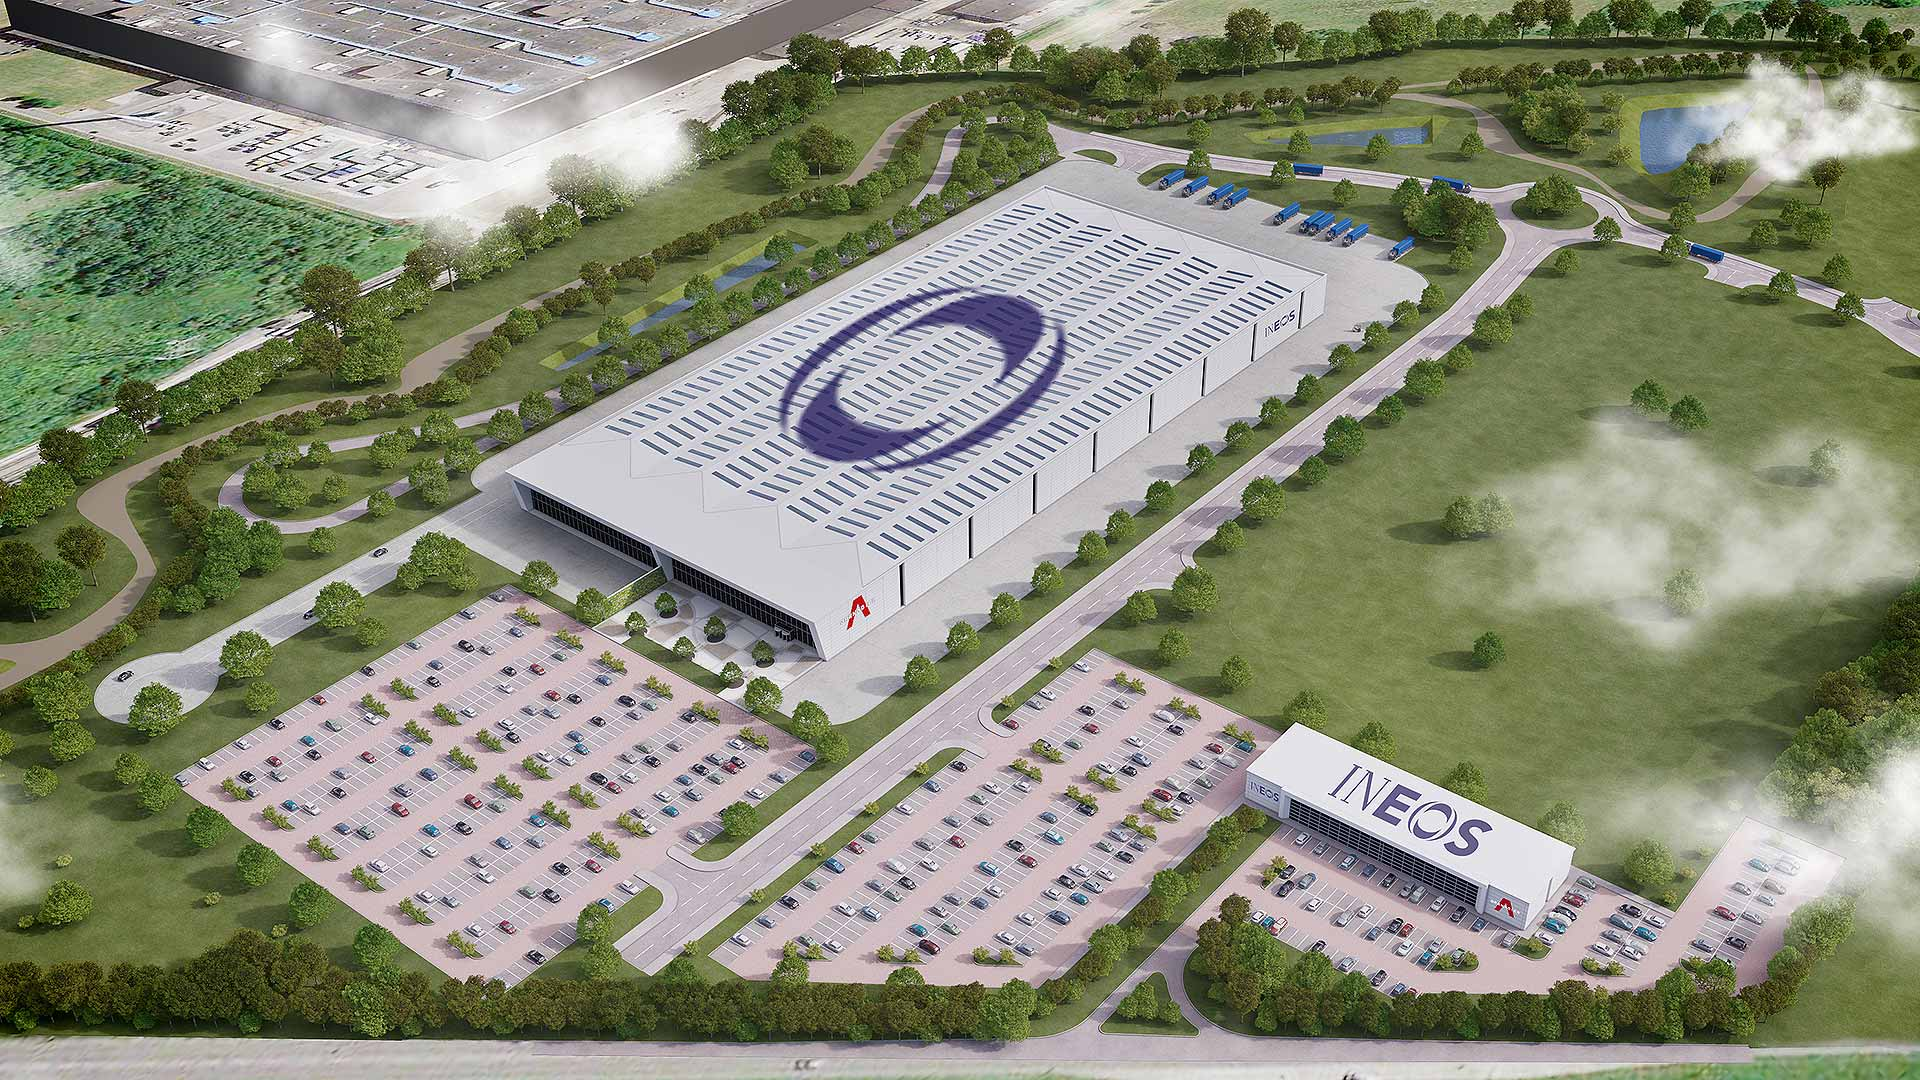 Artist's impression of the Ineos Automotive Bridgend factory